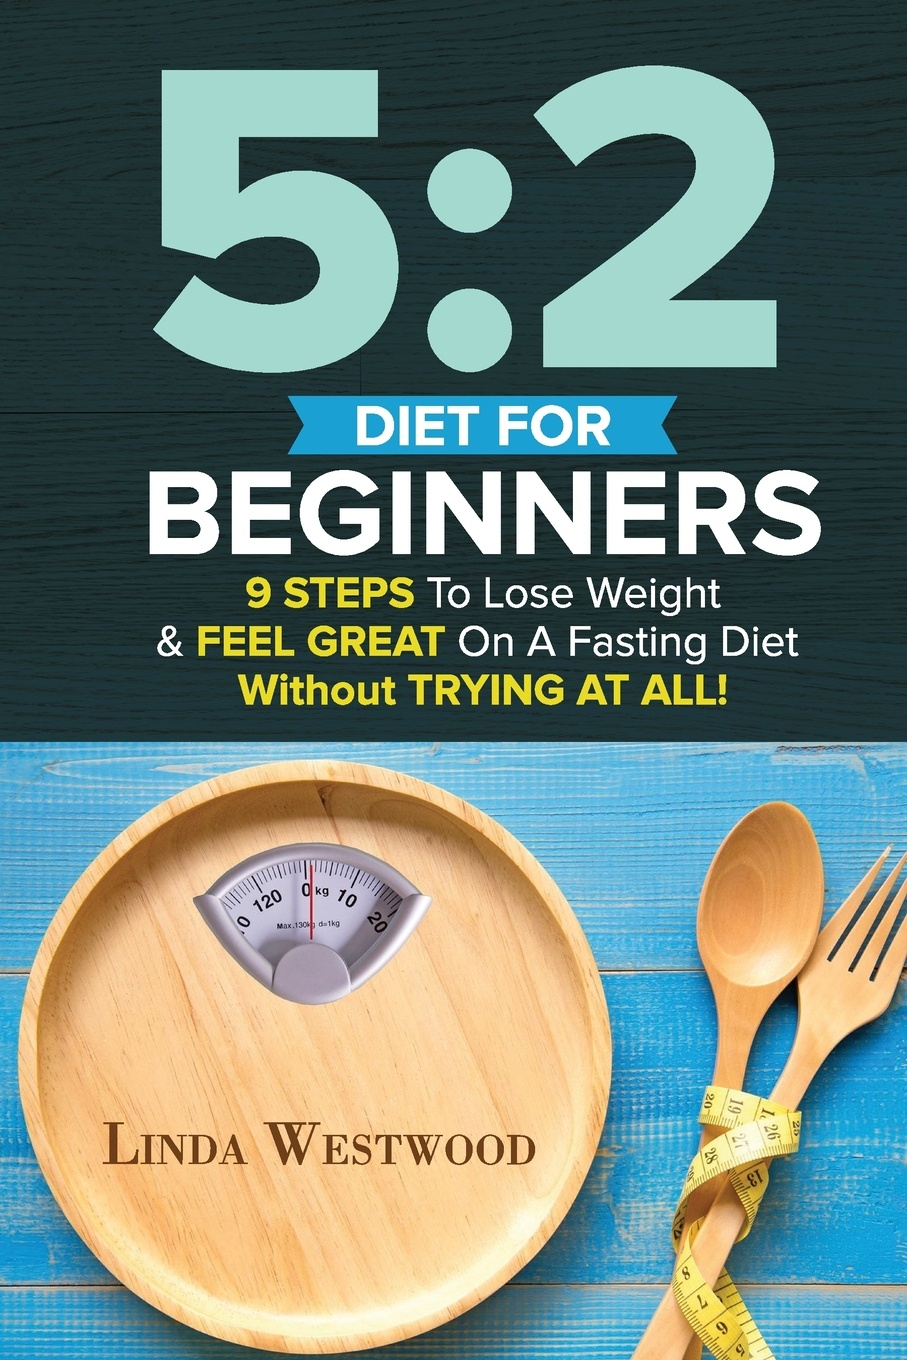 Linda Westwood 5. 2 Diet For Beginners (2nd Edition): 9 Steps To Lose Weight & Feel Great On A Fasting